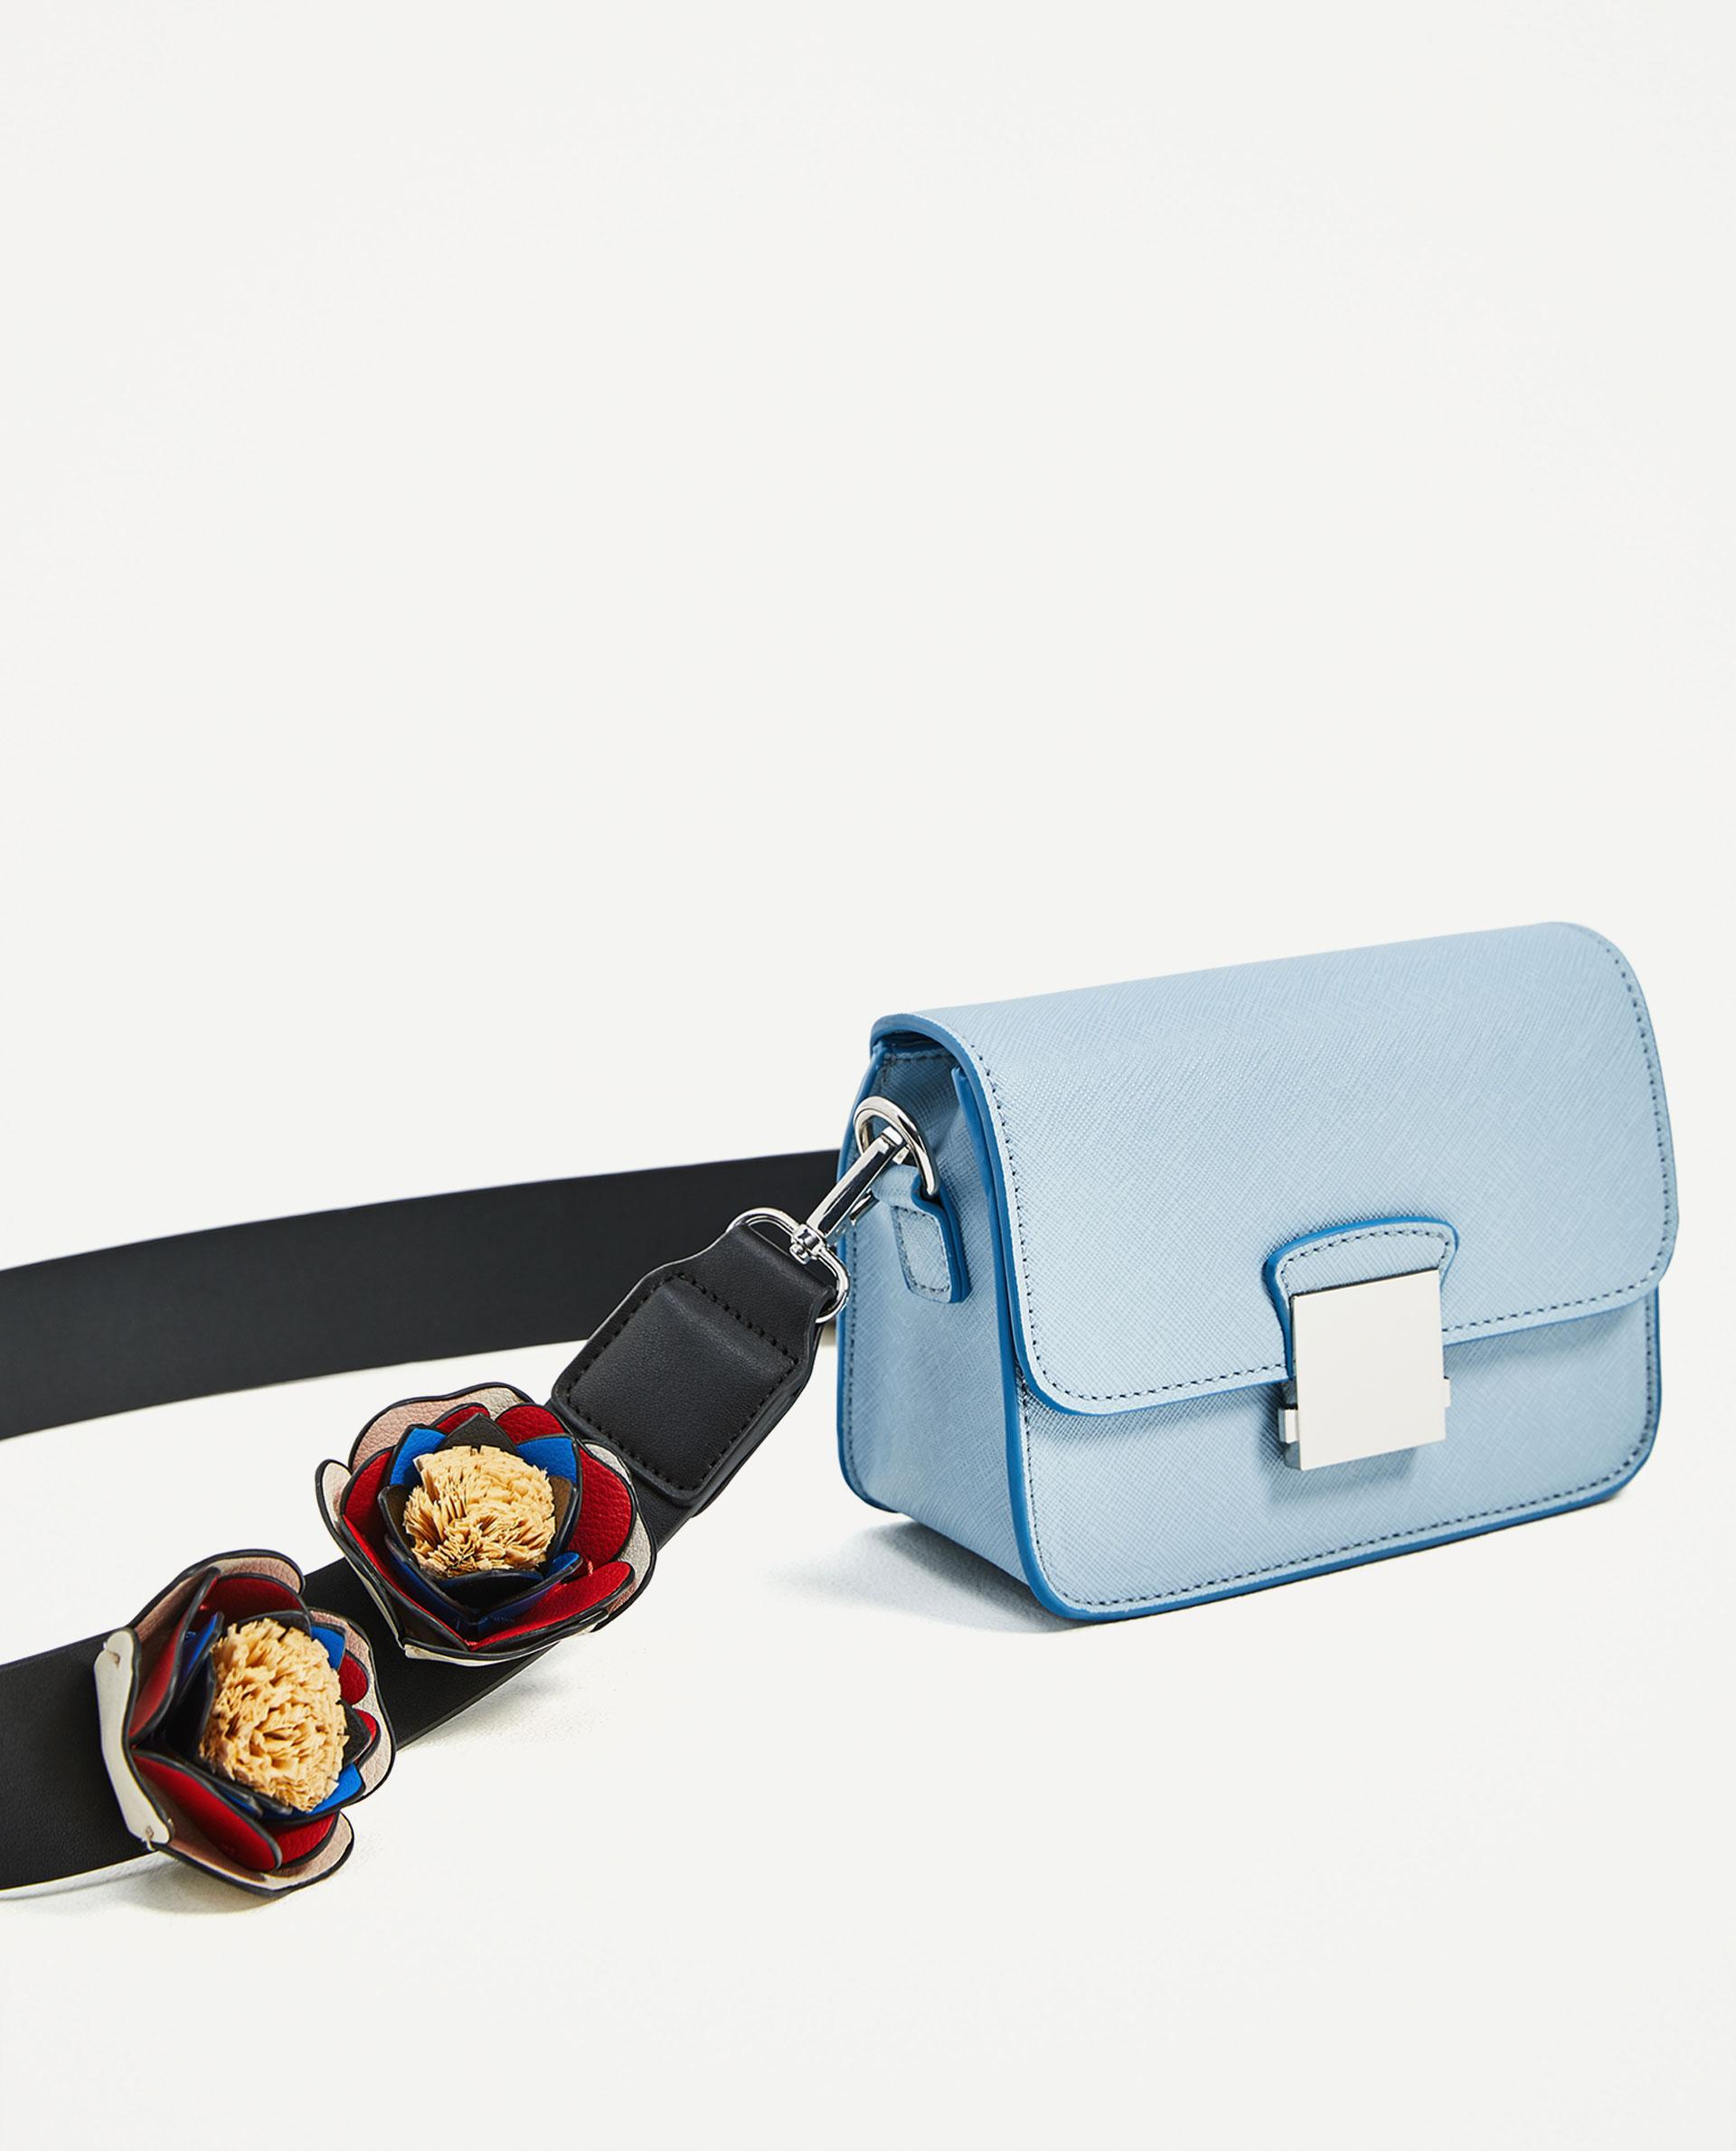 Zara Crossbody Bag With Floral Strap In Blue | Lyst